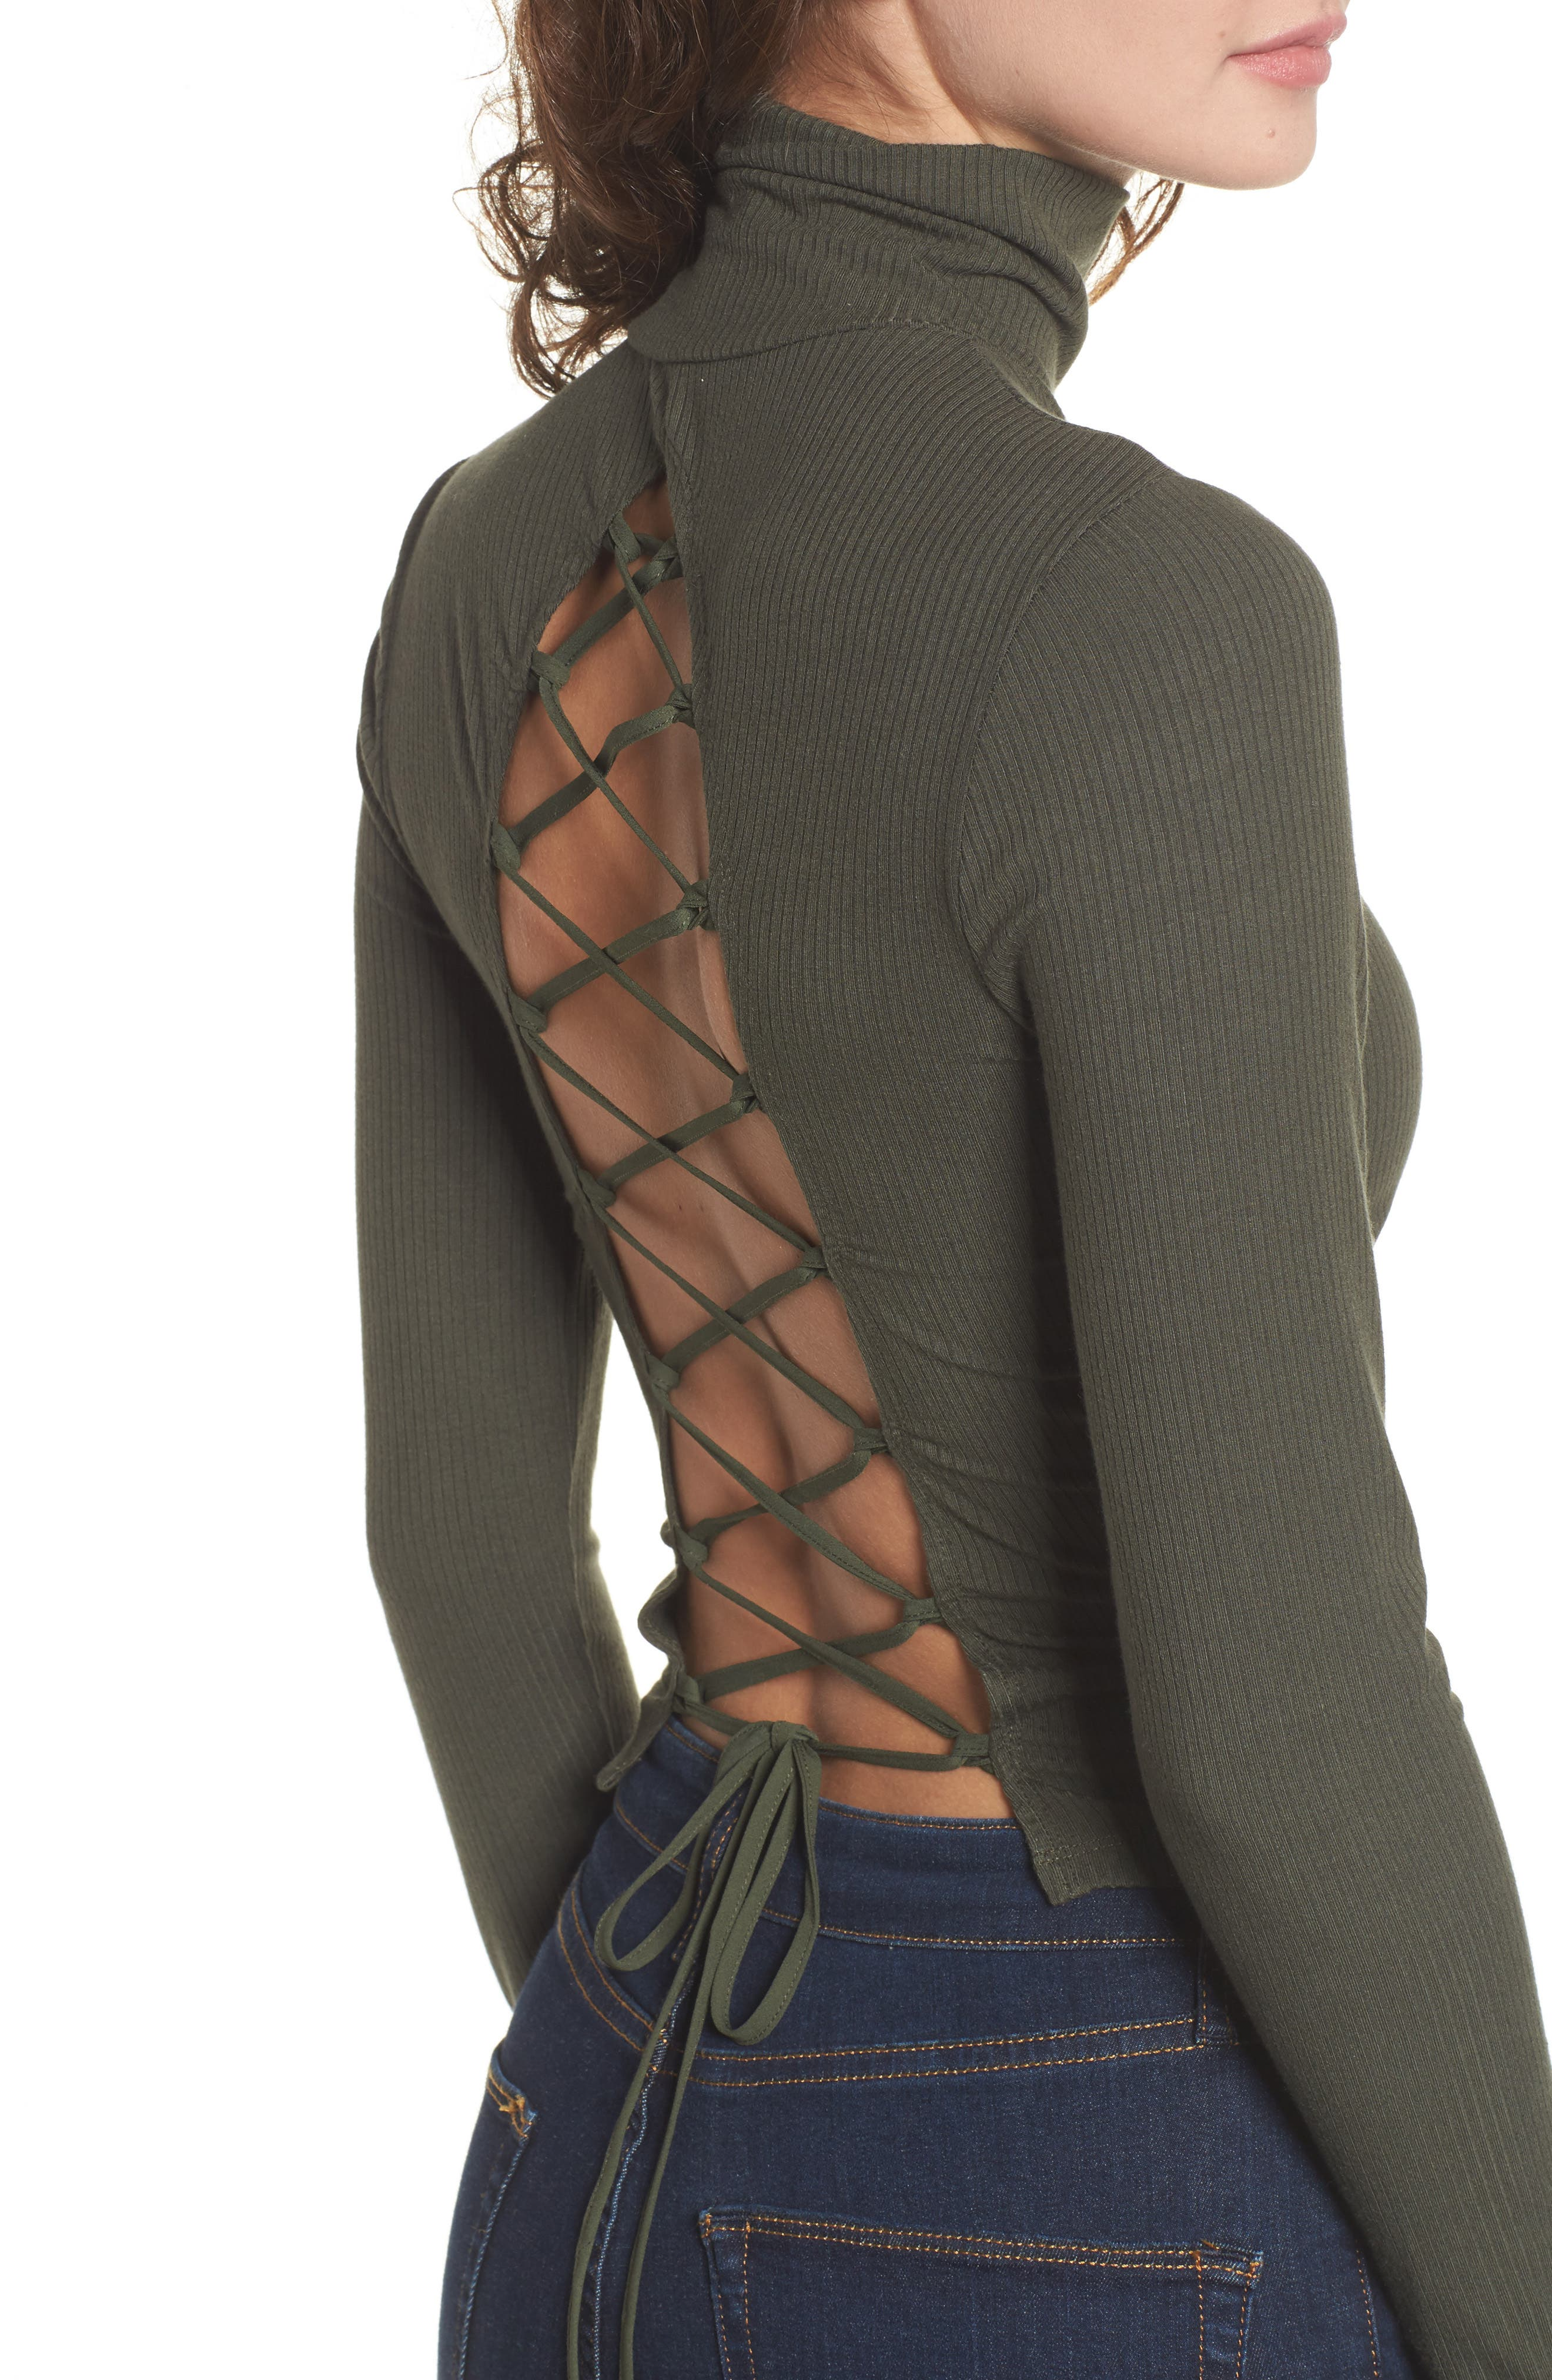 Mira Lace Up Turtleneck,                             Alternate thumbnail 3, color,                             Olive